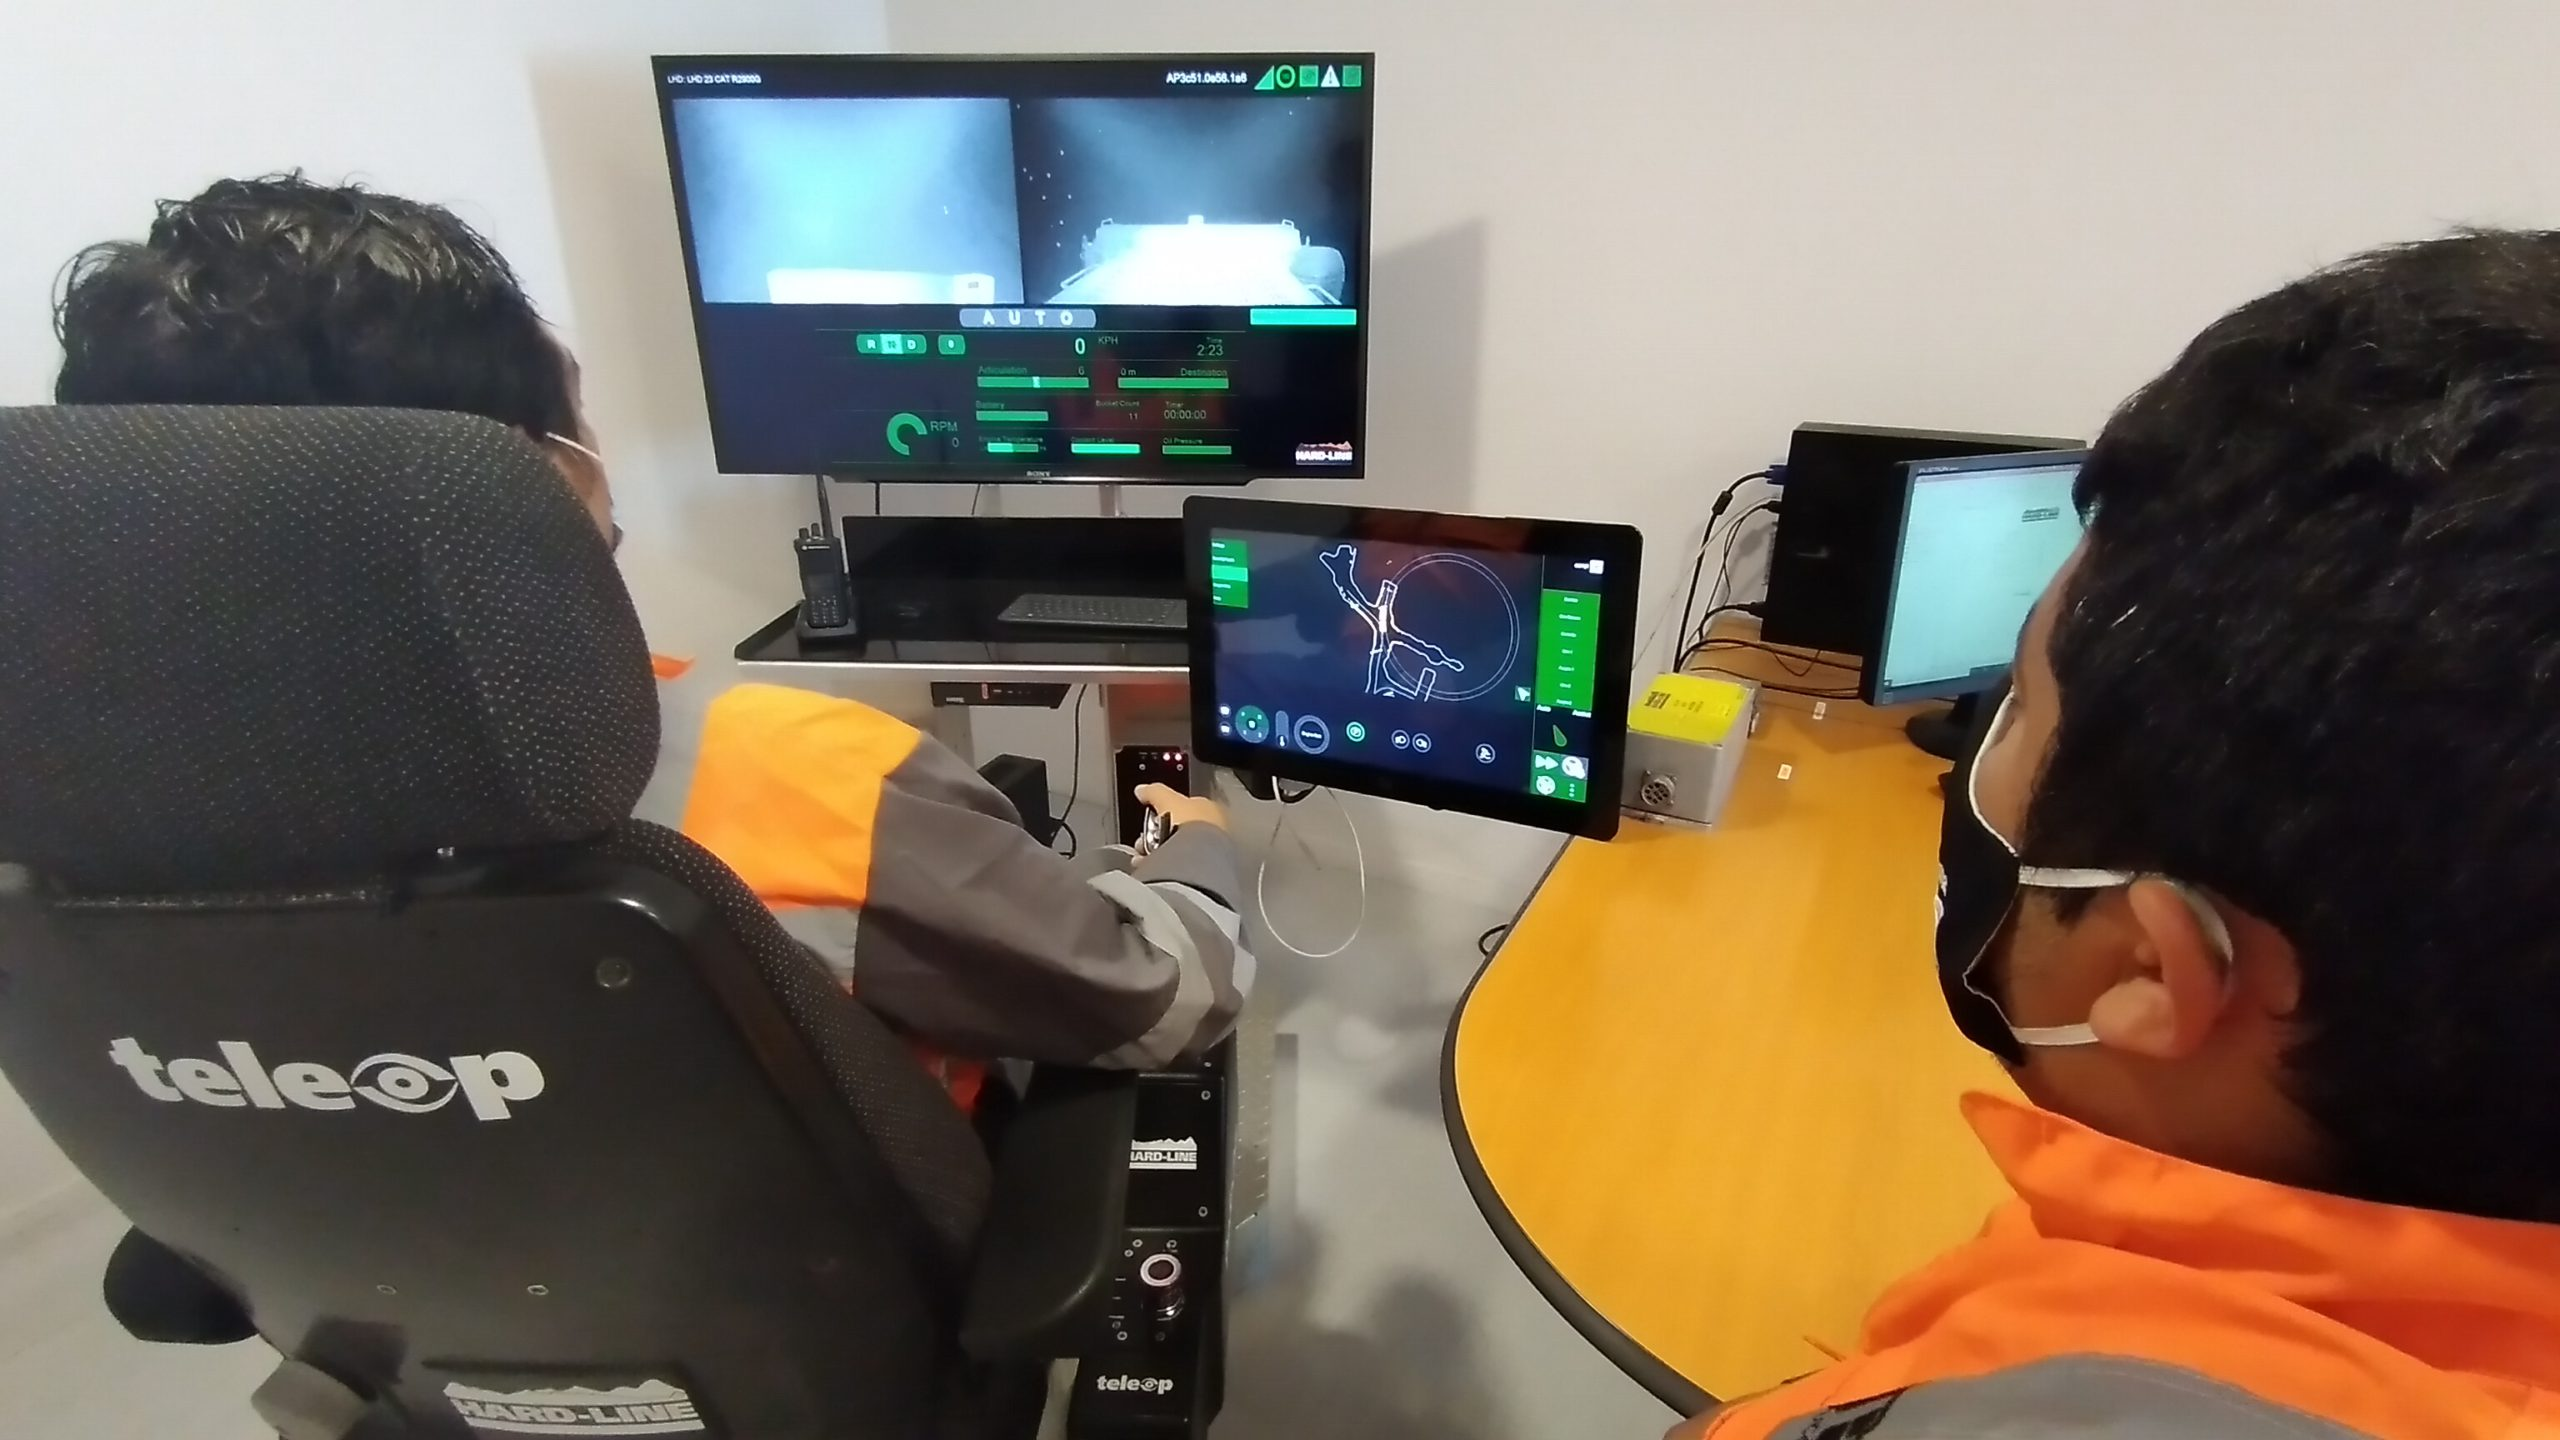 Pucobre Team Operating with TeleOp